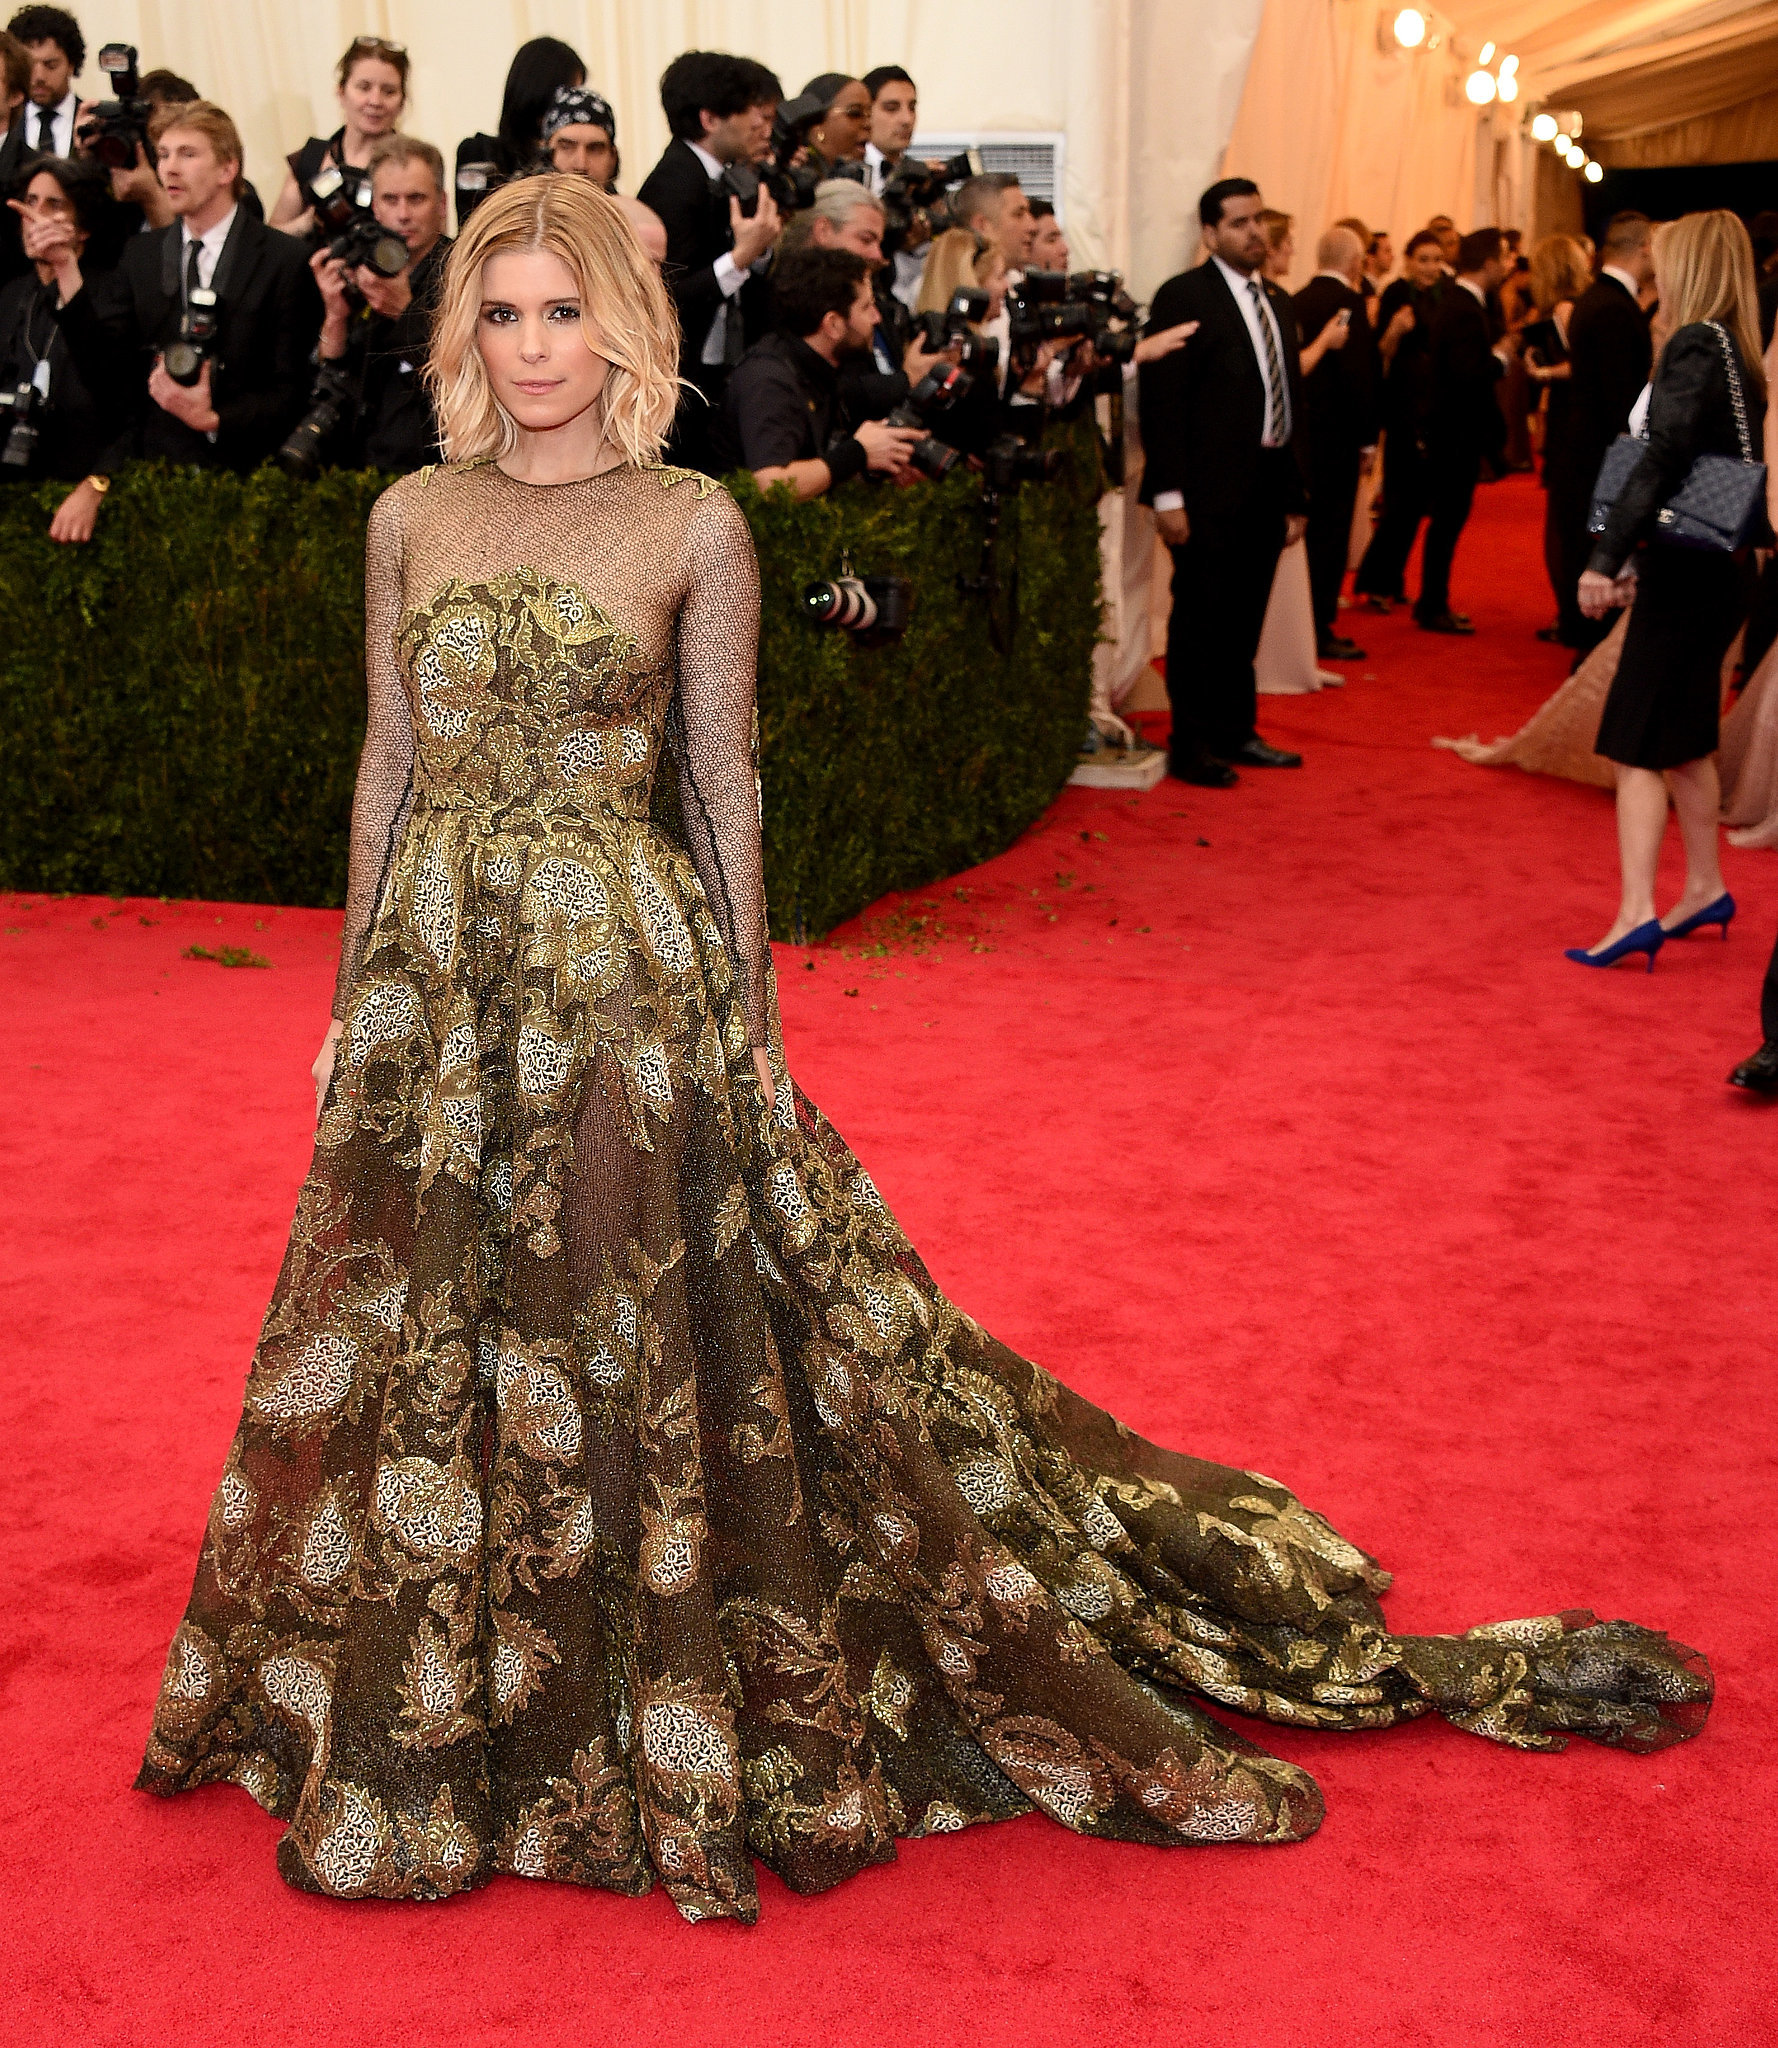 Kate Mara at the 2014 Met Gala